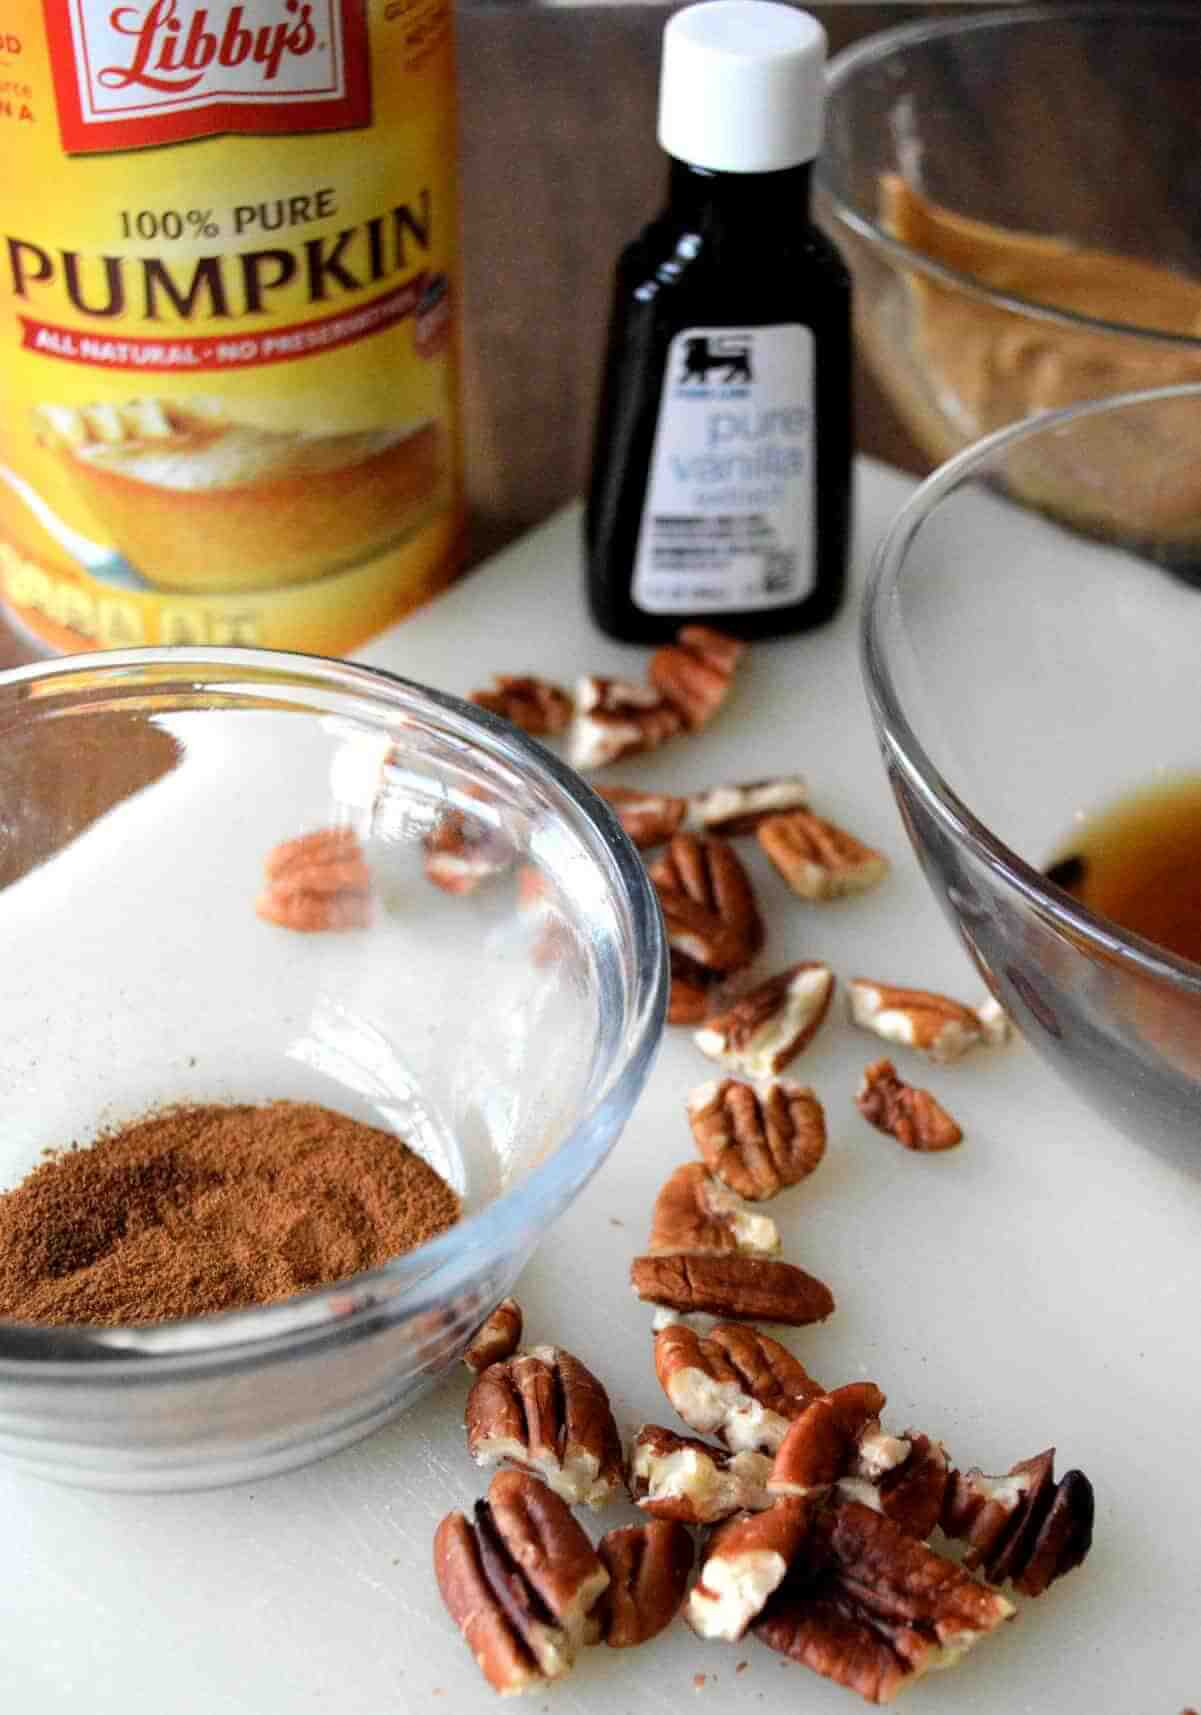 Ingredients for a holiday candy treat.